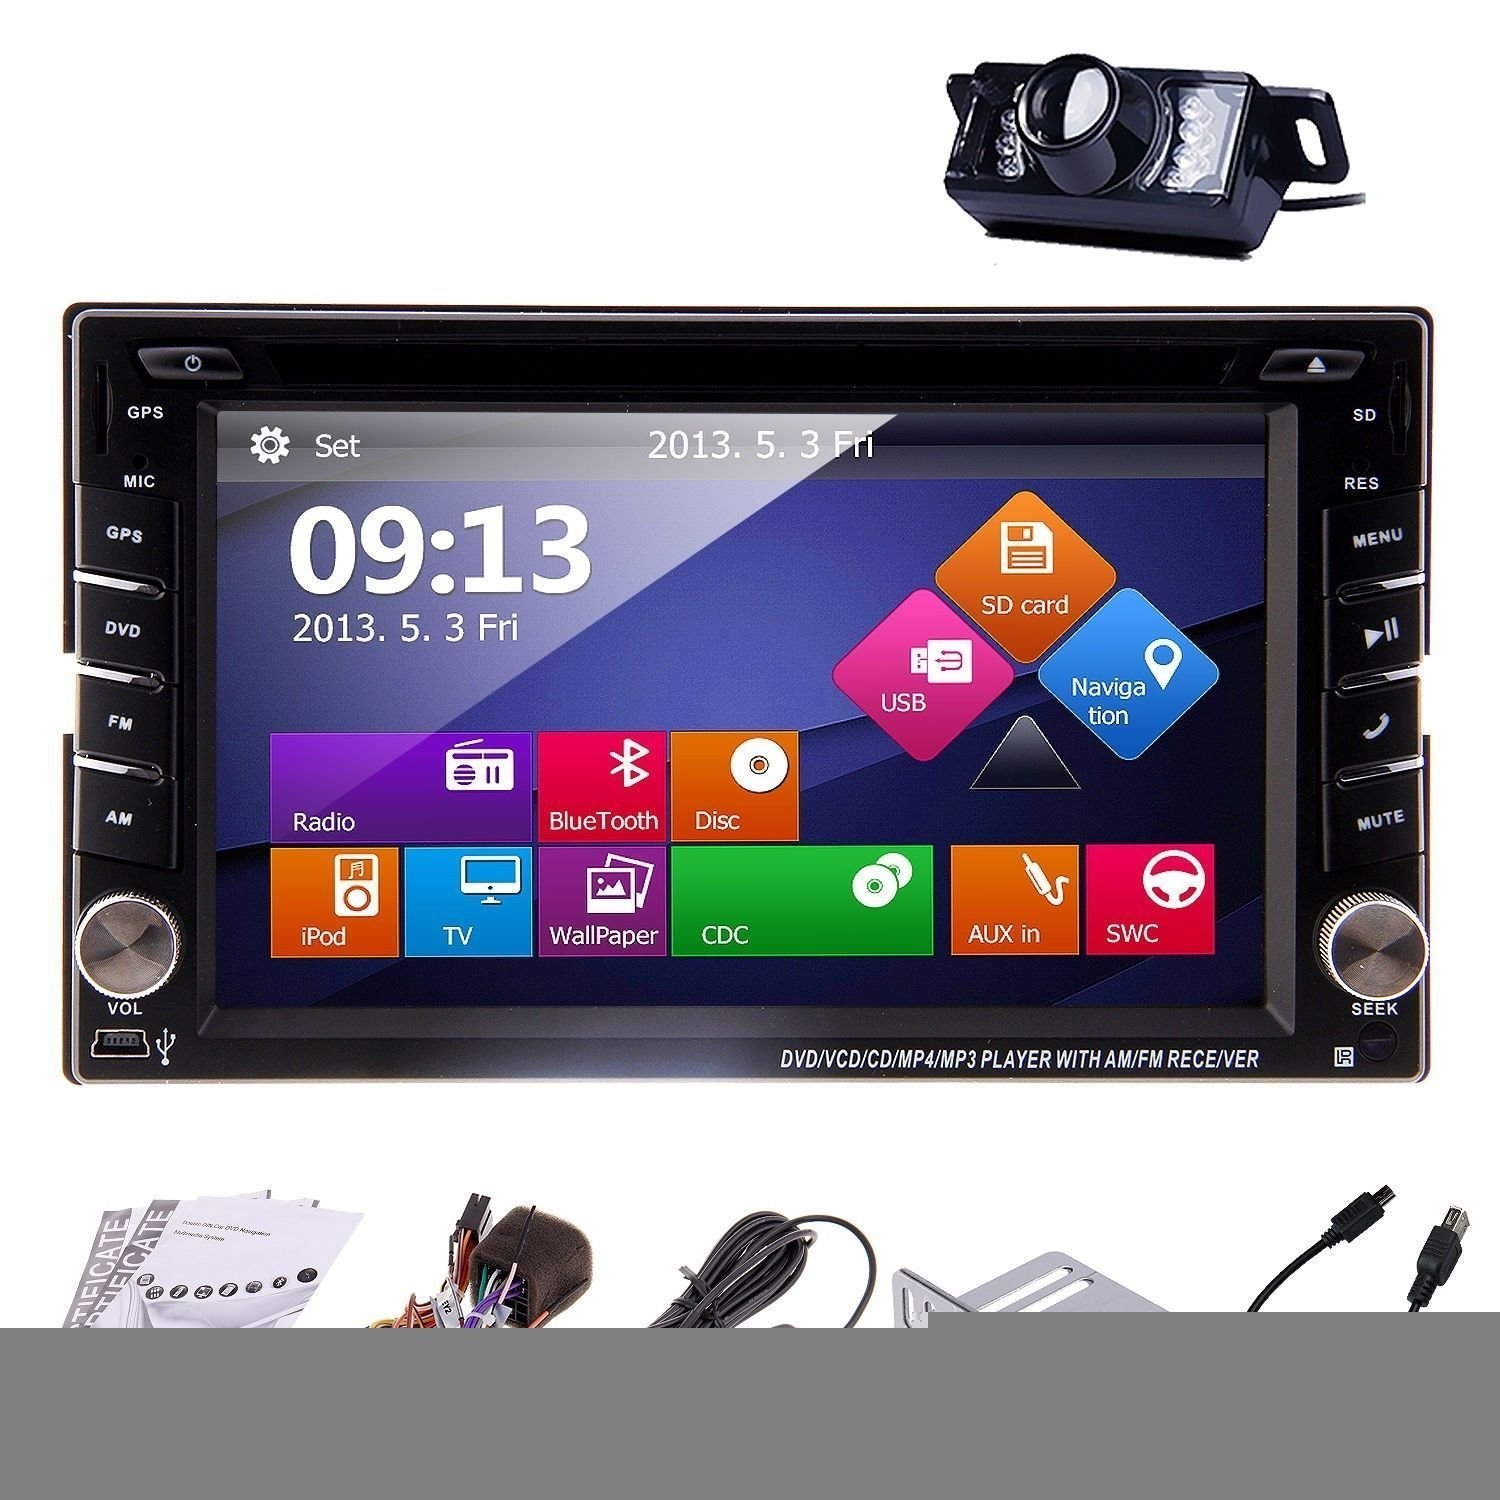 Christmas Sale!!! Player Pupug Rear Camera Included Receiver 2015 New Model 6.2 Inch Double FM/AM 2 DIN In Dash Car DVD Autoradio Player Touch screen LCD Monitor Car with DVD CD MP3 MP4 USB VC